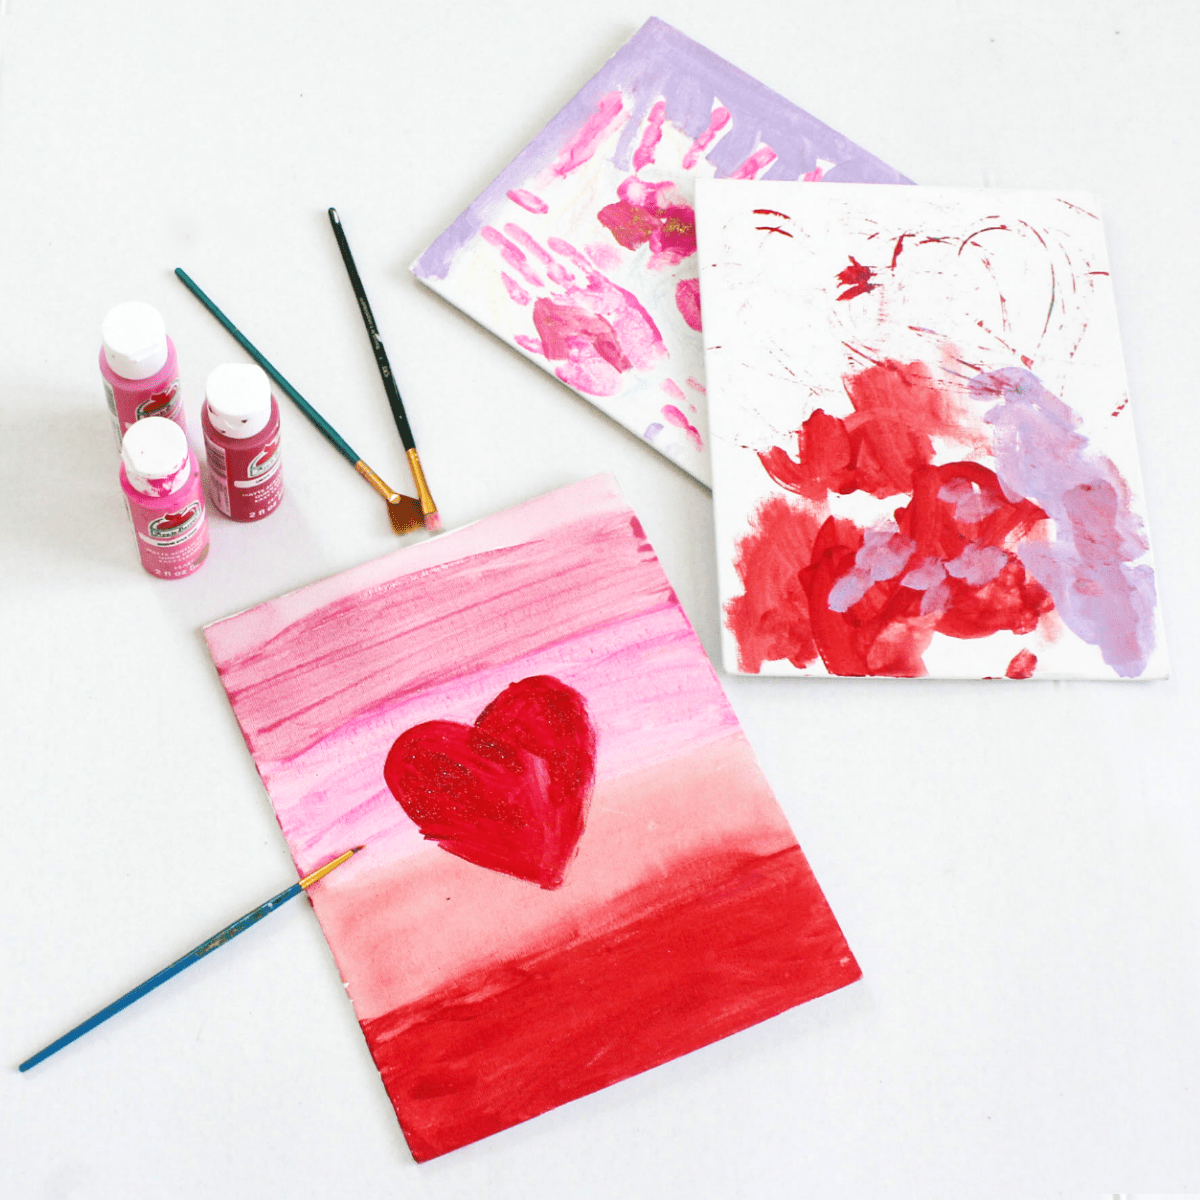 Diy Canvas Painting Activity For Toddlers Through Kindergarten At Home With Zan